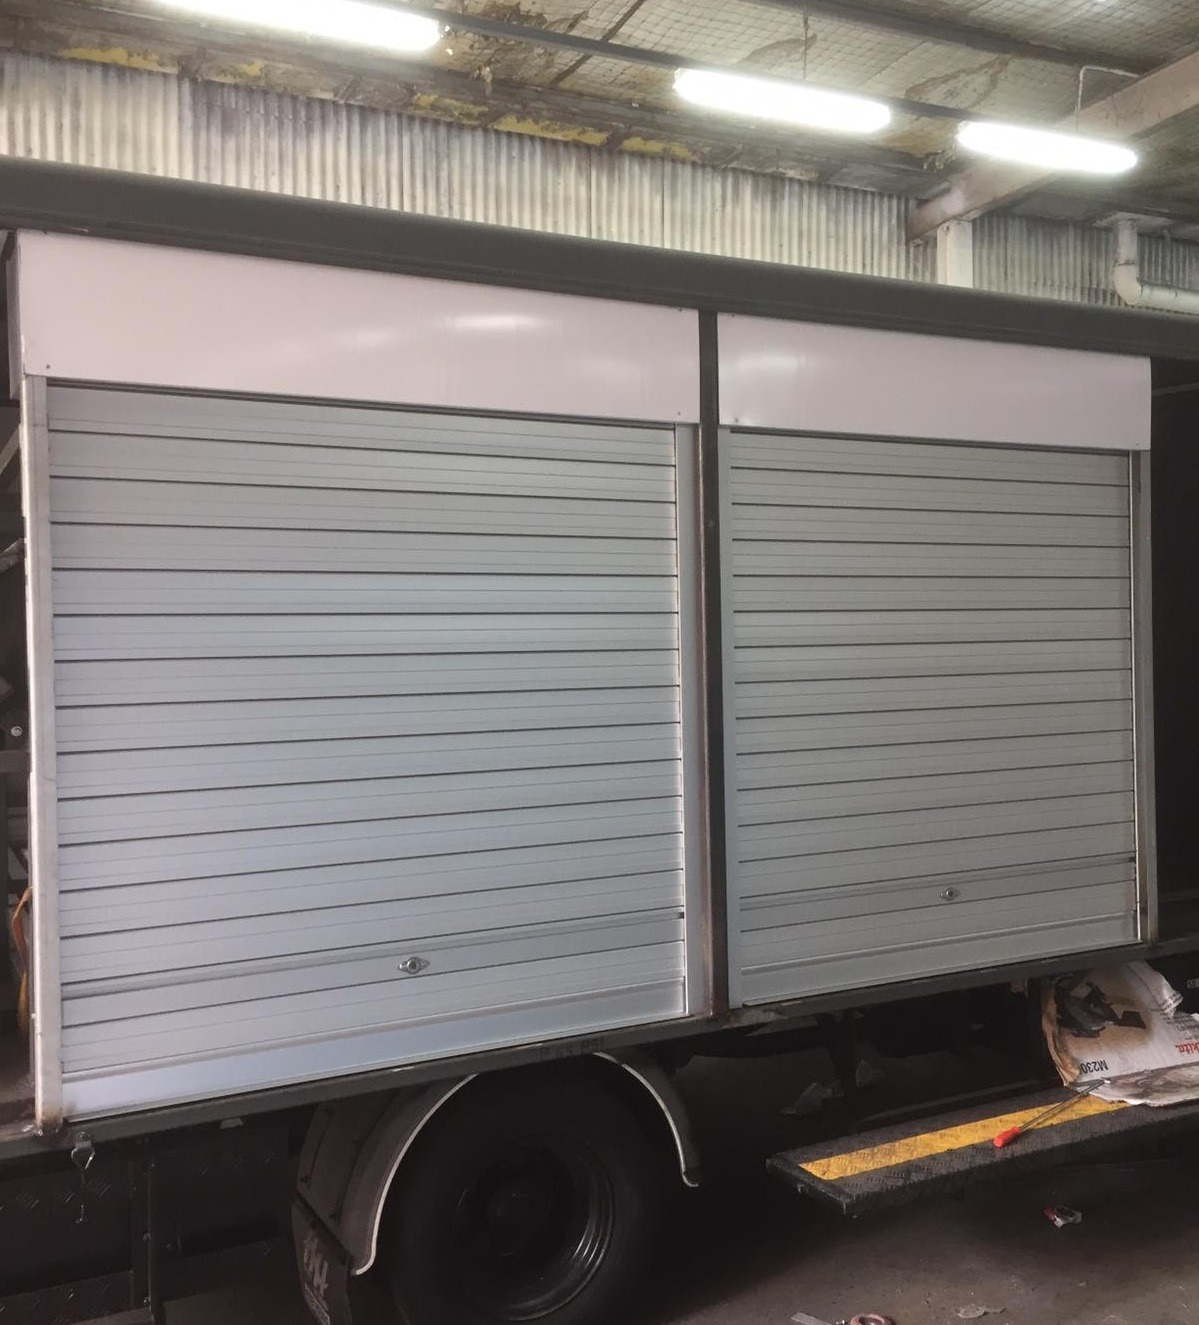 New Manually Operated Aluminium Roller Shutters Installed for Sides of Truck